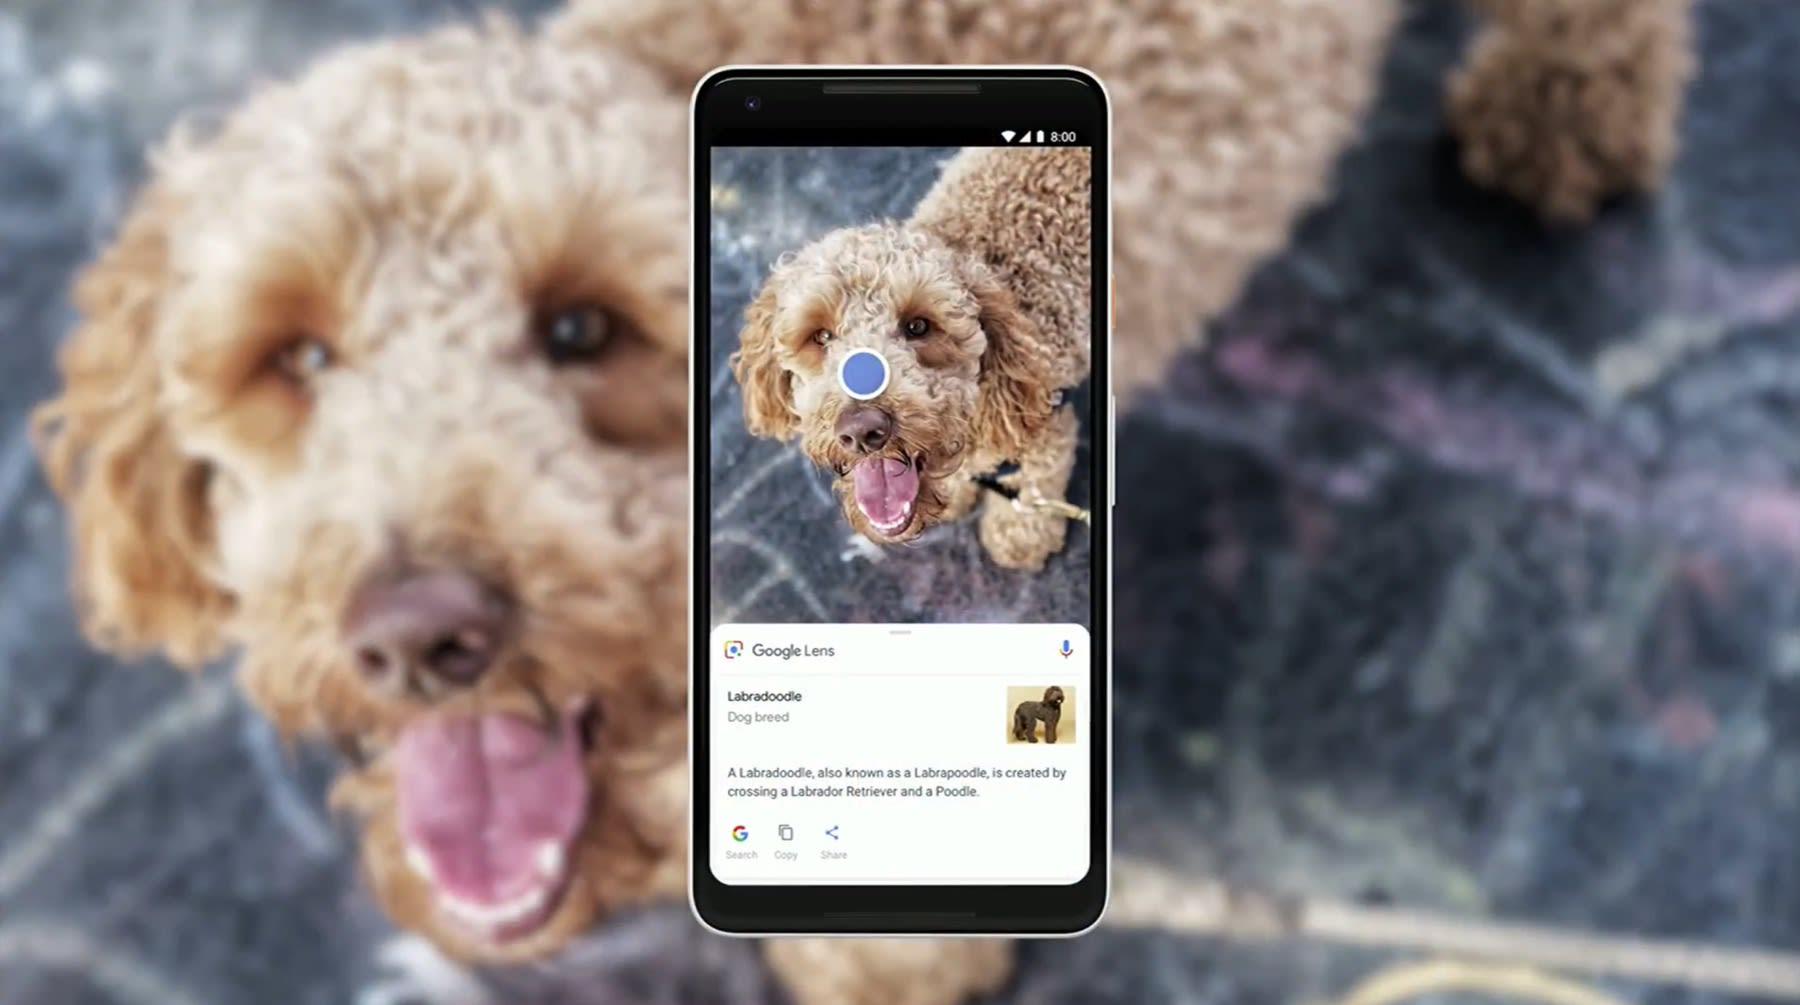 Google Lens will be available in stock camera apps